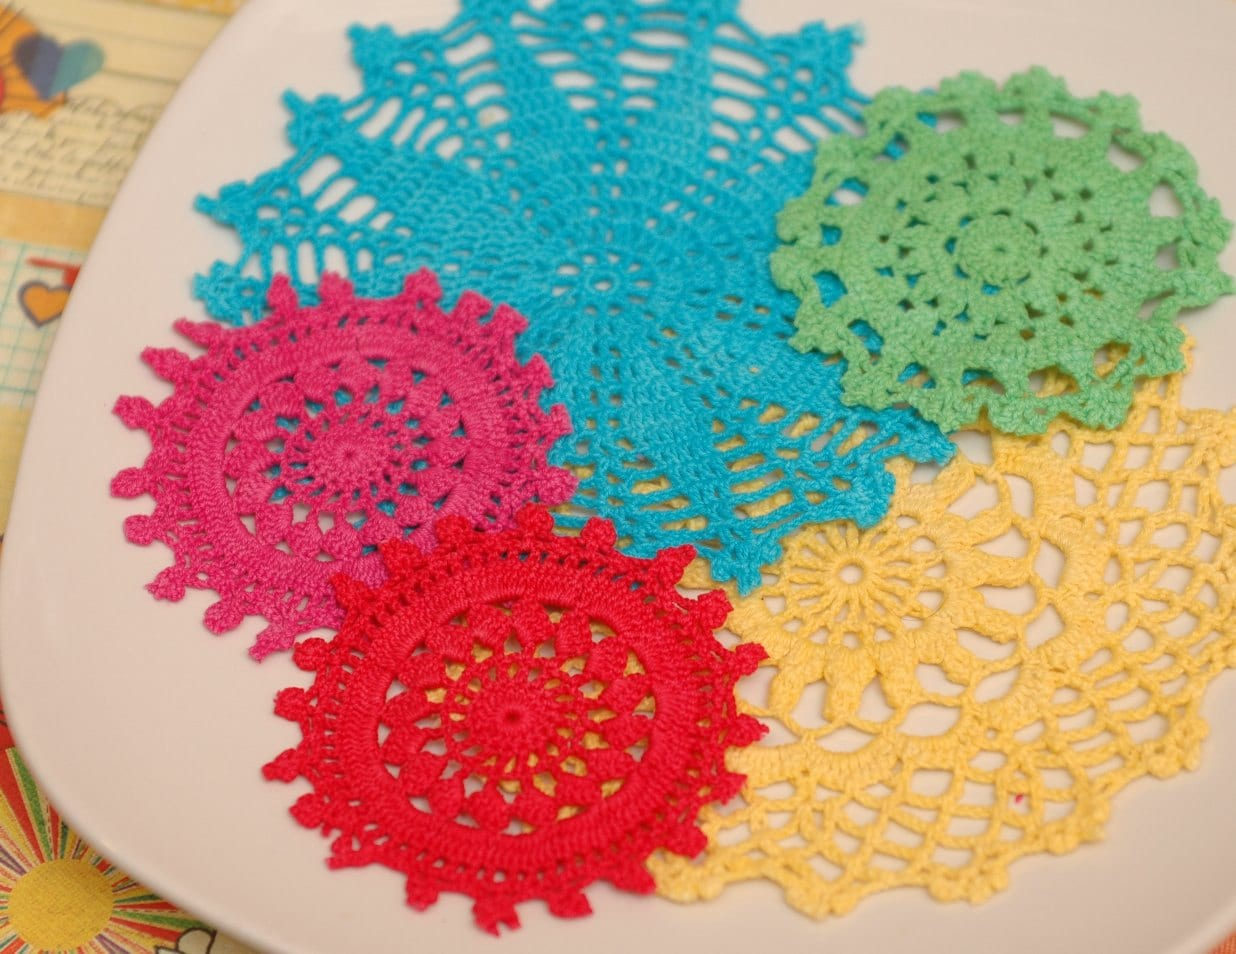 DOILY BRIGHTS - bella collection 5